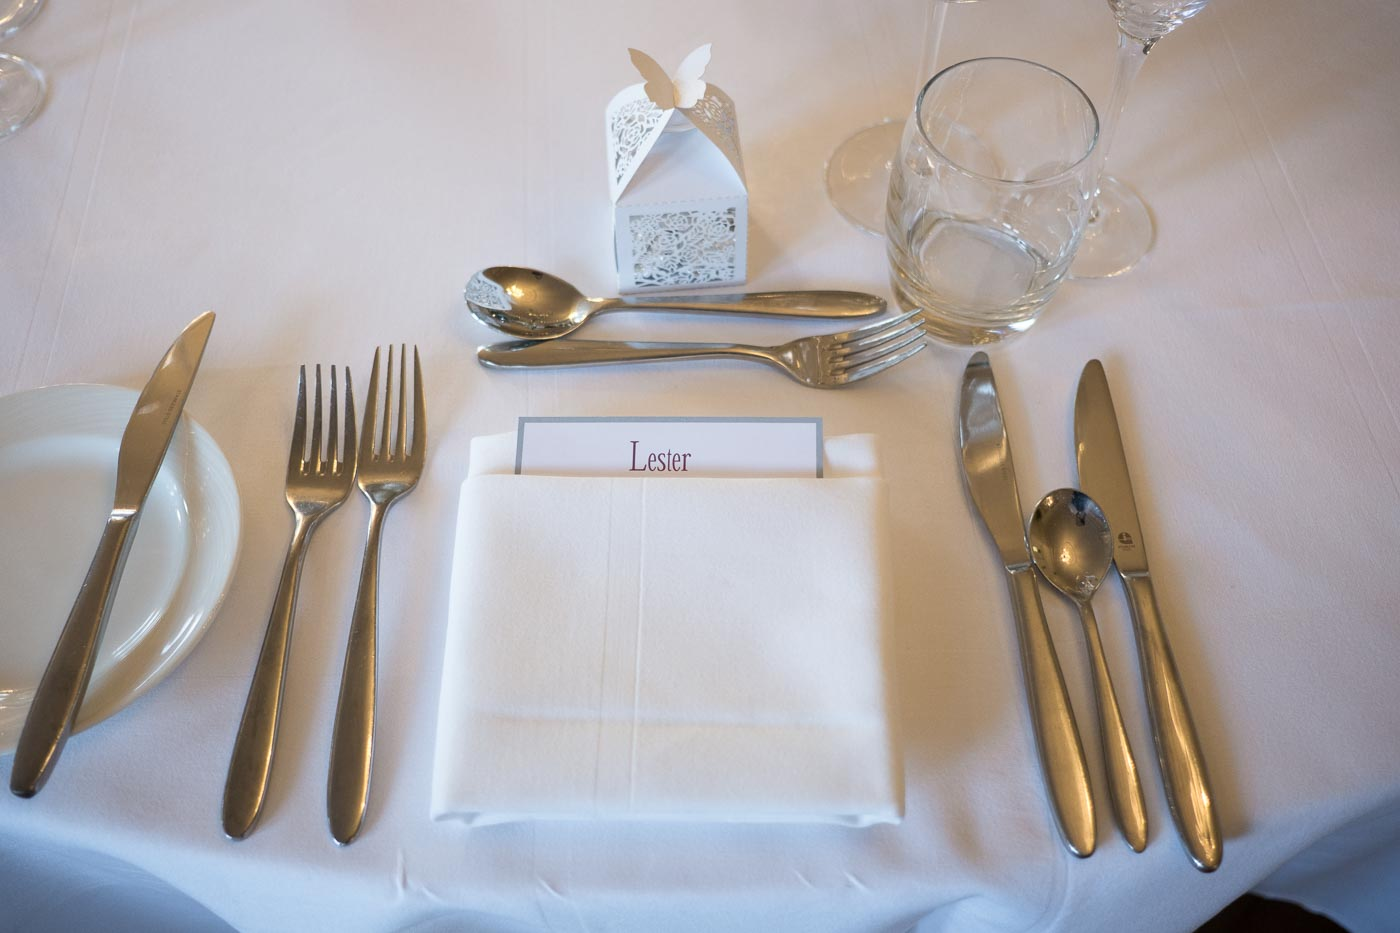 Lester table name card and white wedding favour box